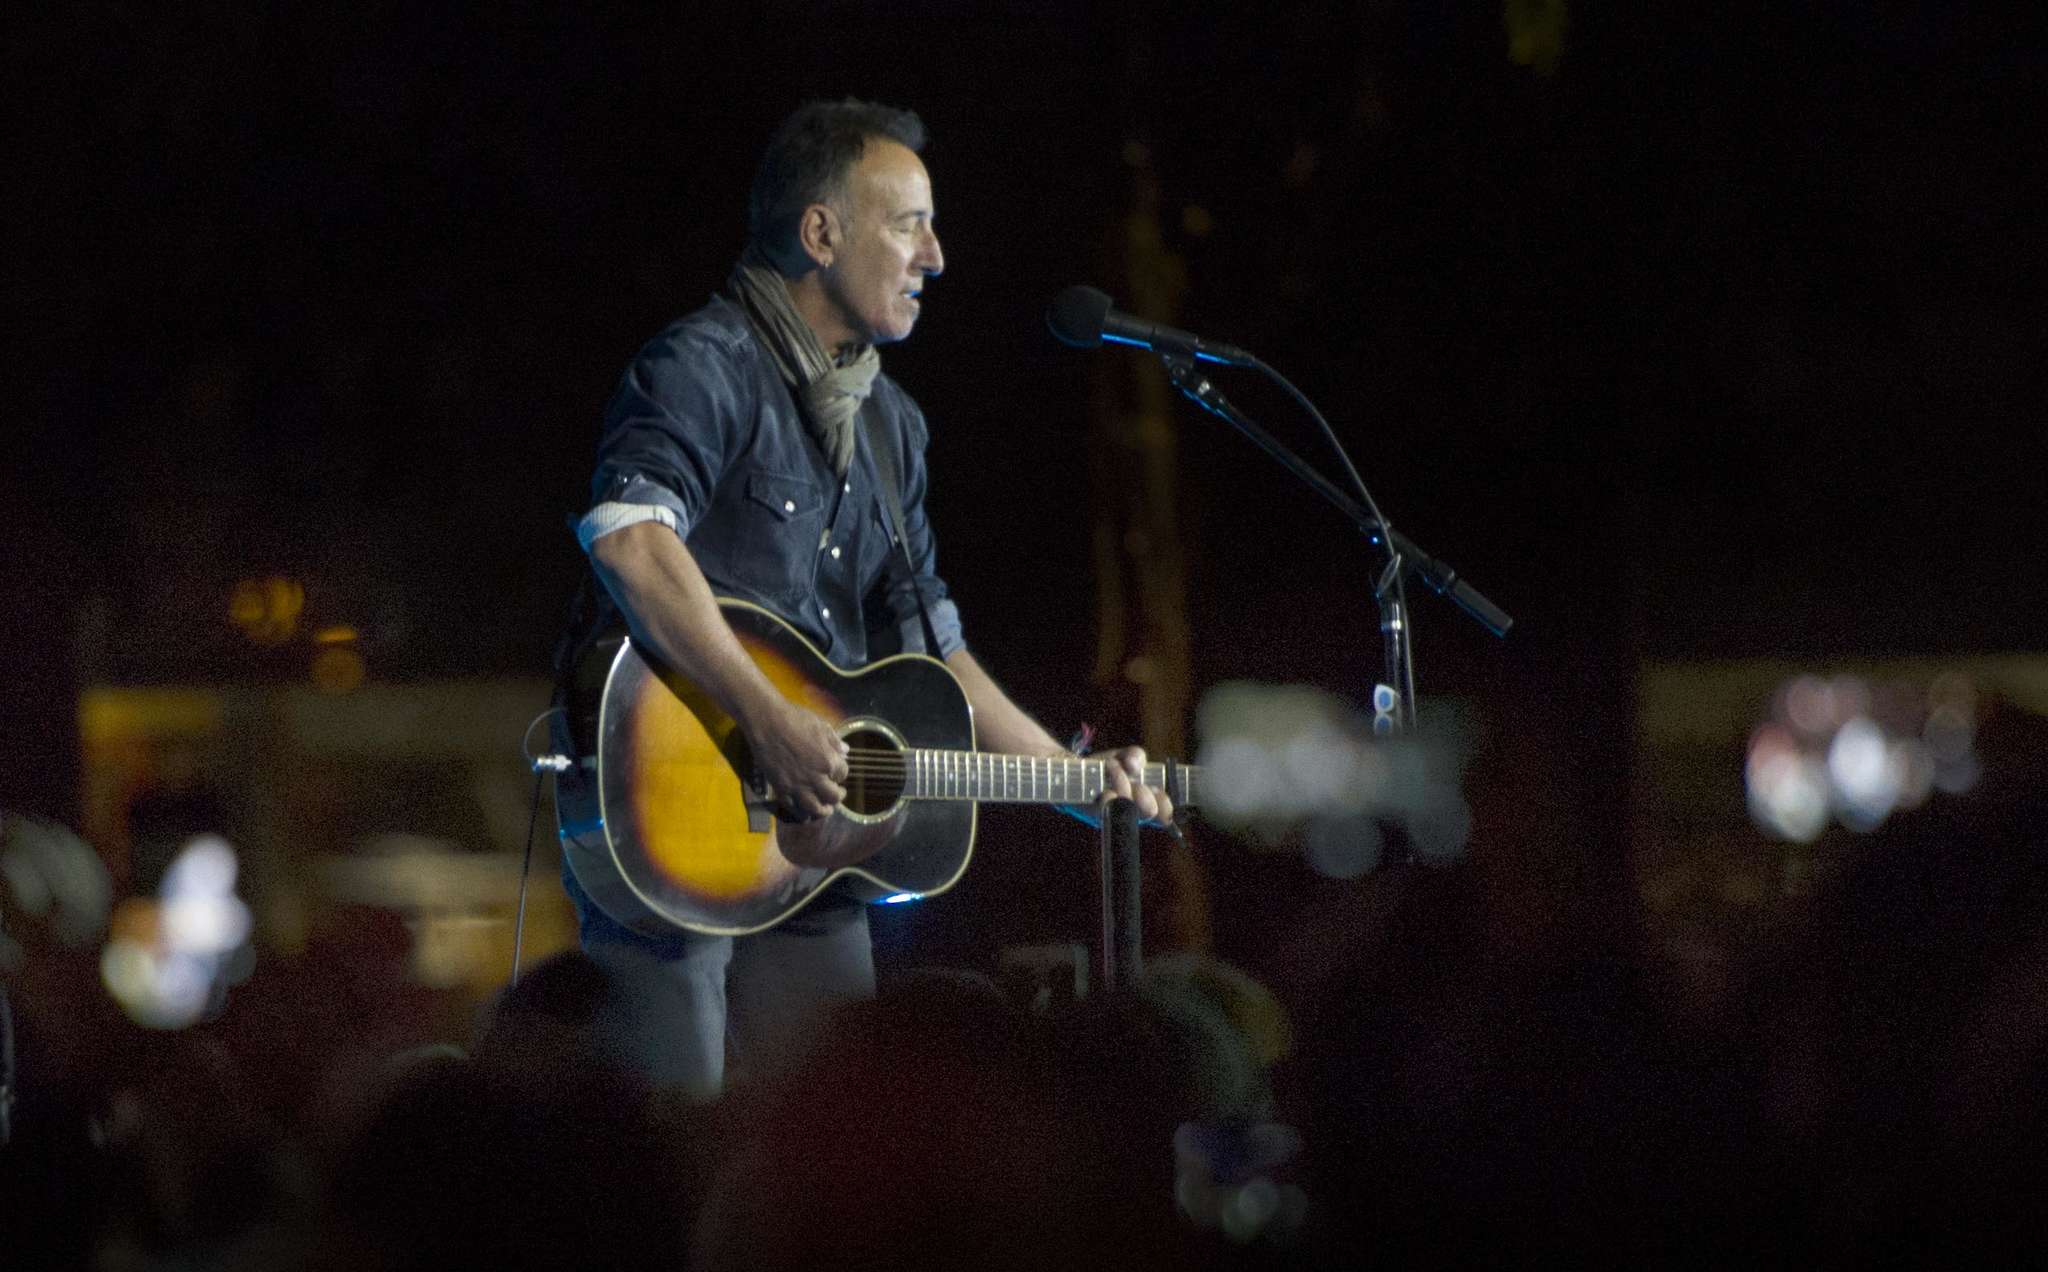 Bruce Springsteen sings before the Democratic nominee, Hillary Clinton, spoke at Independence Hall.